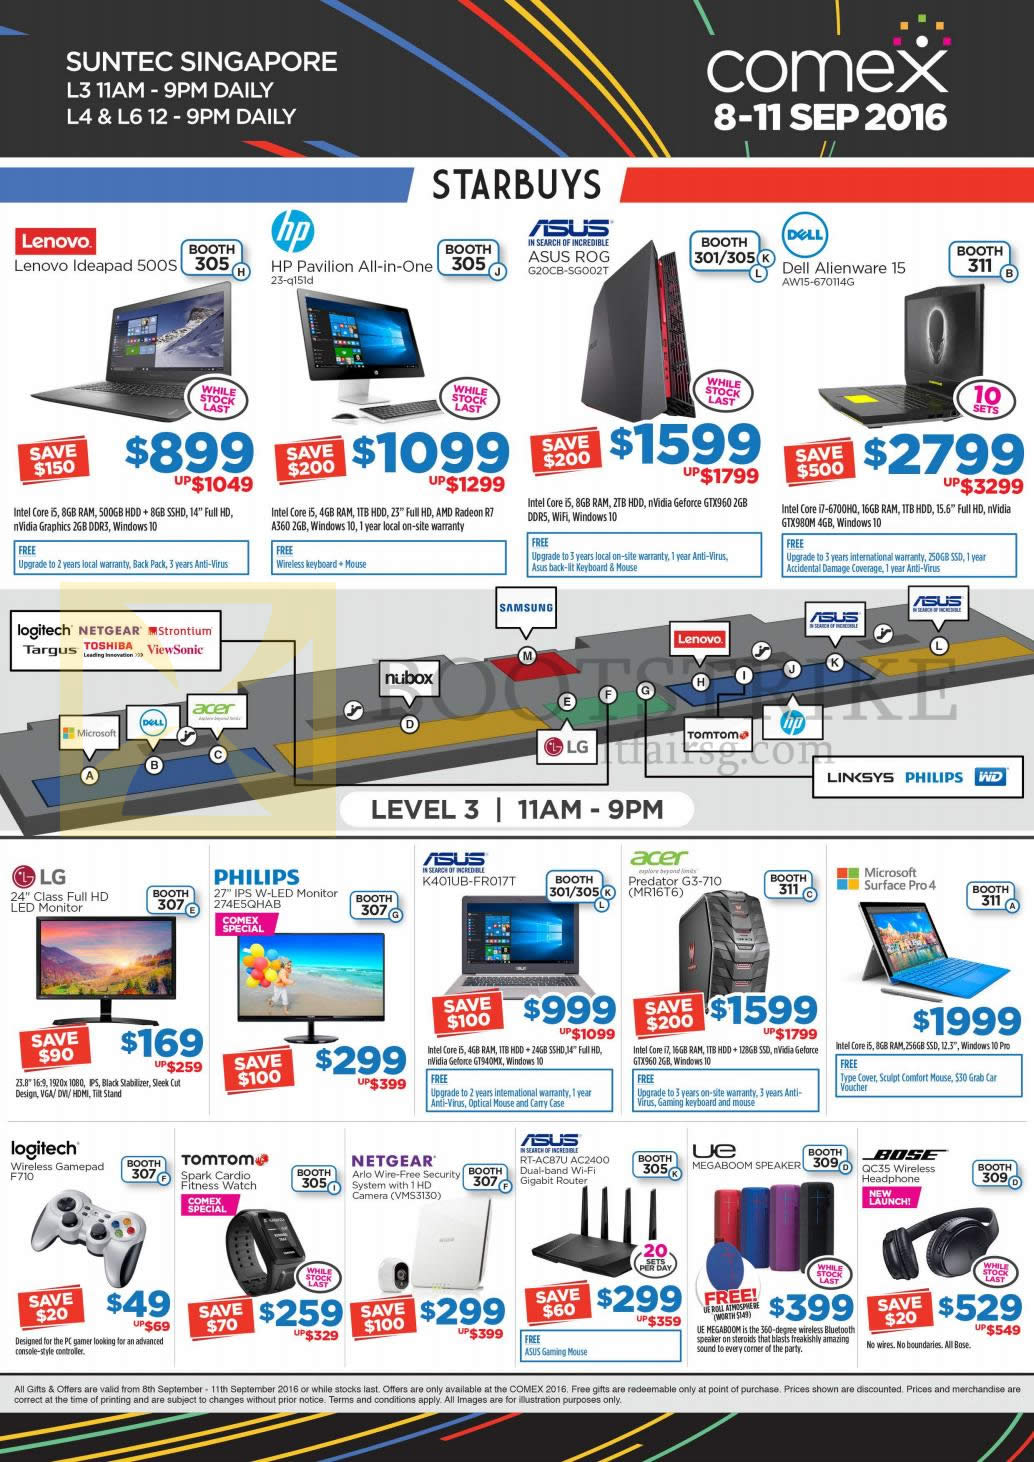 COMEX 2016 price list image brochure of Newstead Star Buys Notebooks, Desktop Pcs, Monitors, Router, Headphone, GamePad, Watch, Lenovo, HP, Asus, Dell, LG, Philips, Acer, Bose, UE, Netgear, Tomtom, Logitech